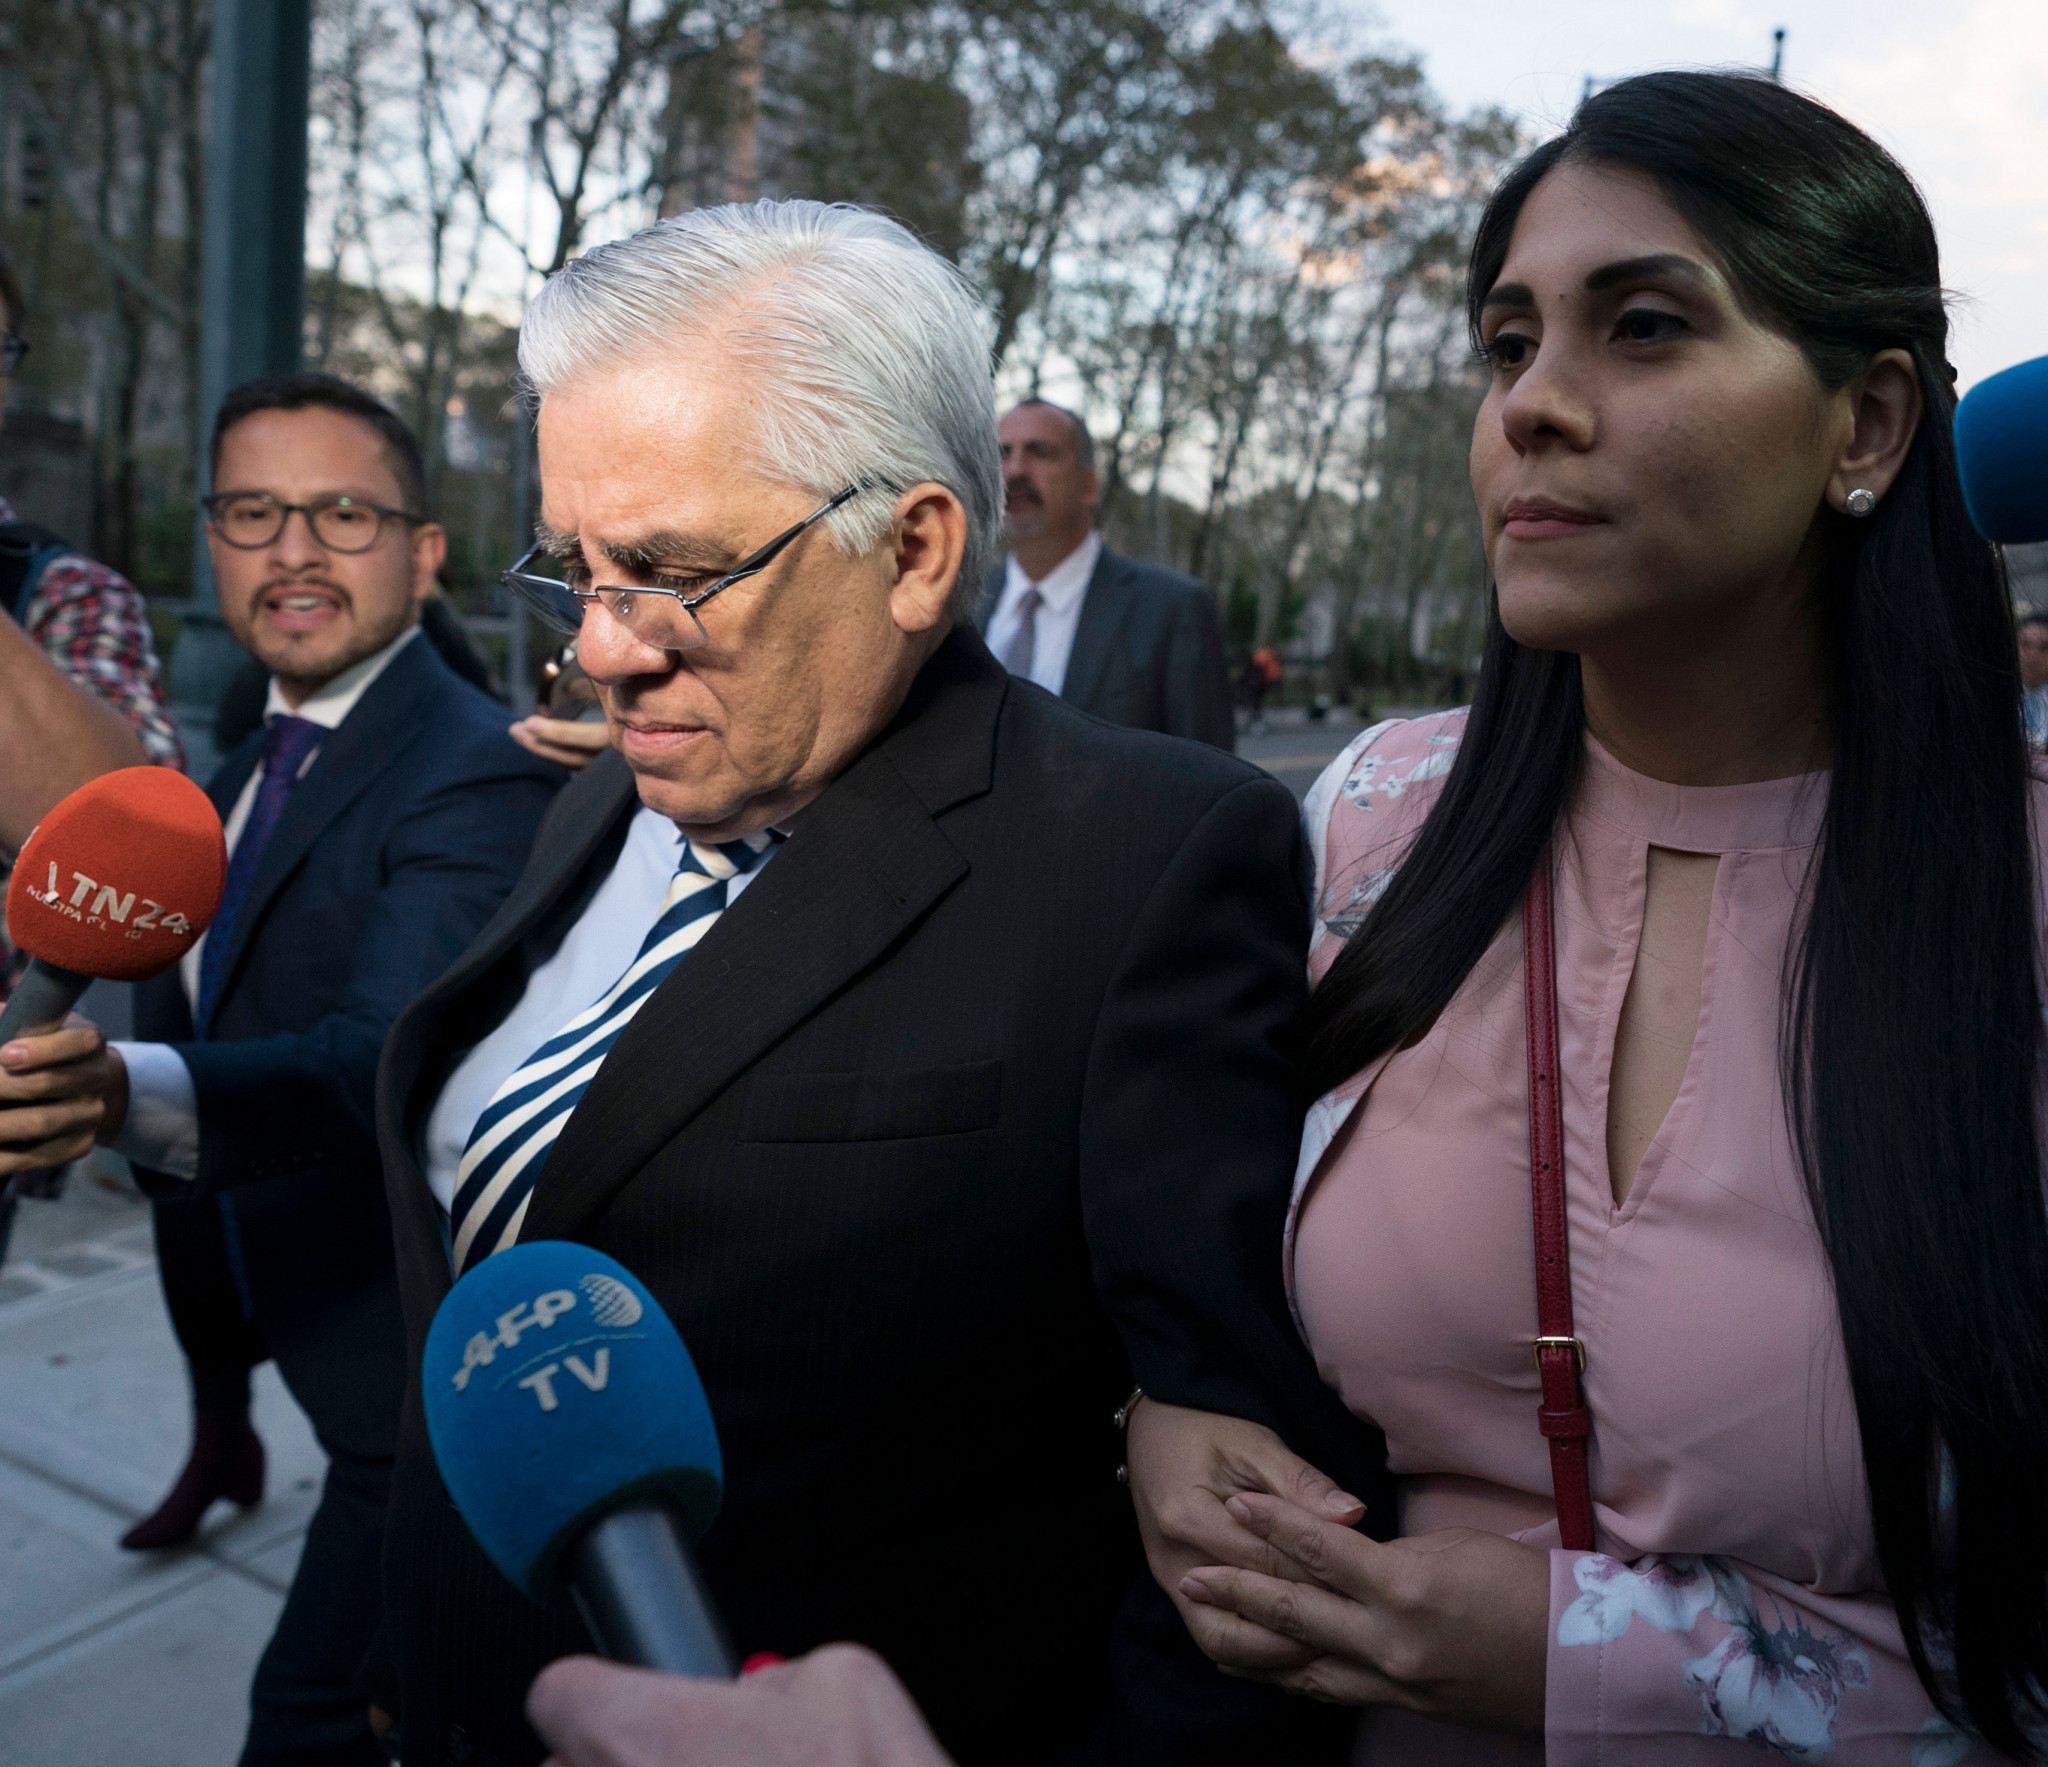 Former Guatemalan judge Hector Trujillo has been banned from football for life by the FIFA Ethics Committee ©Getty Images